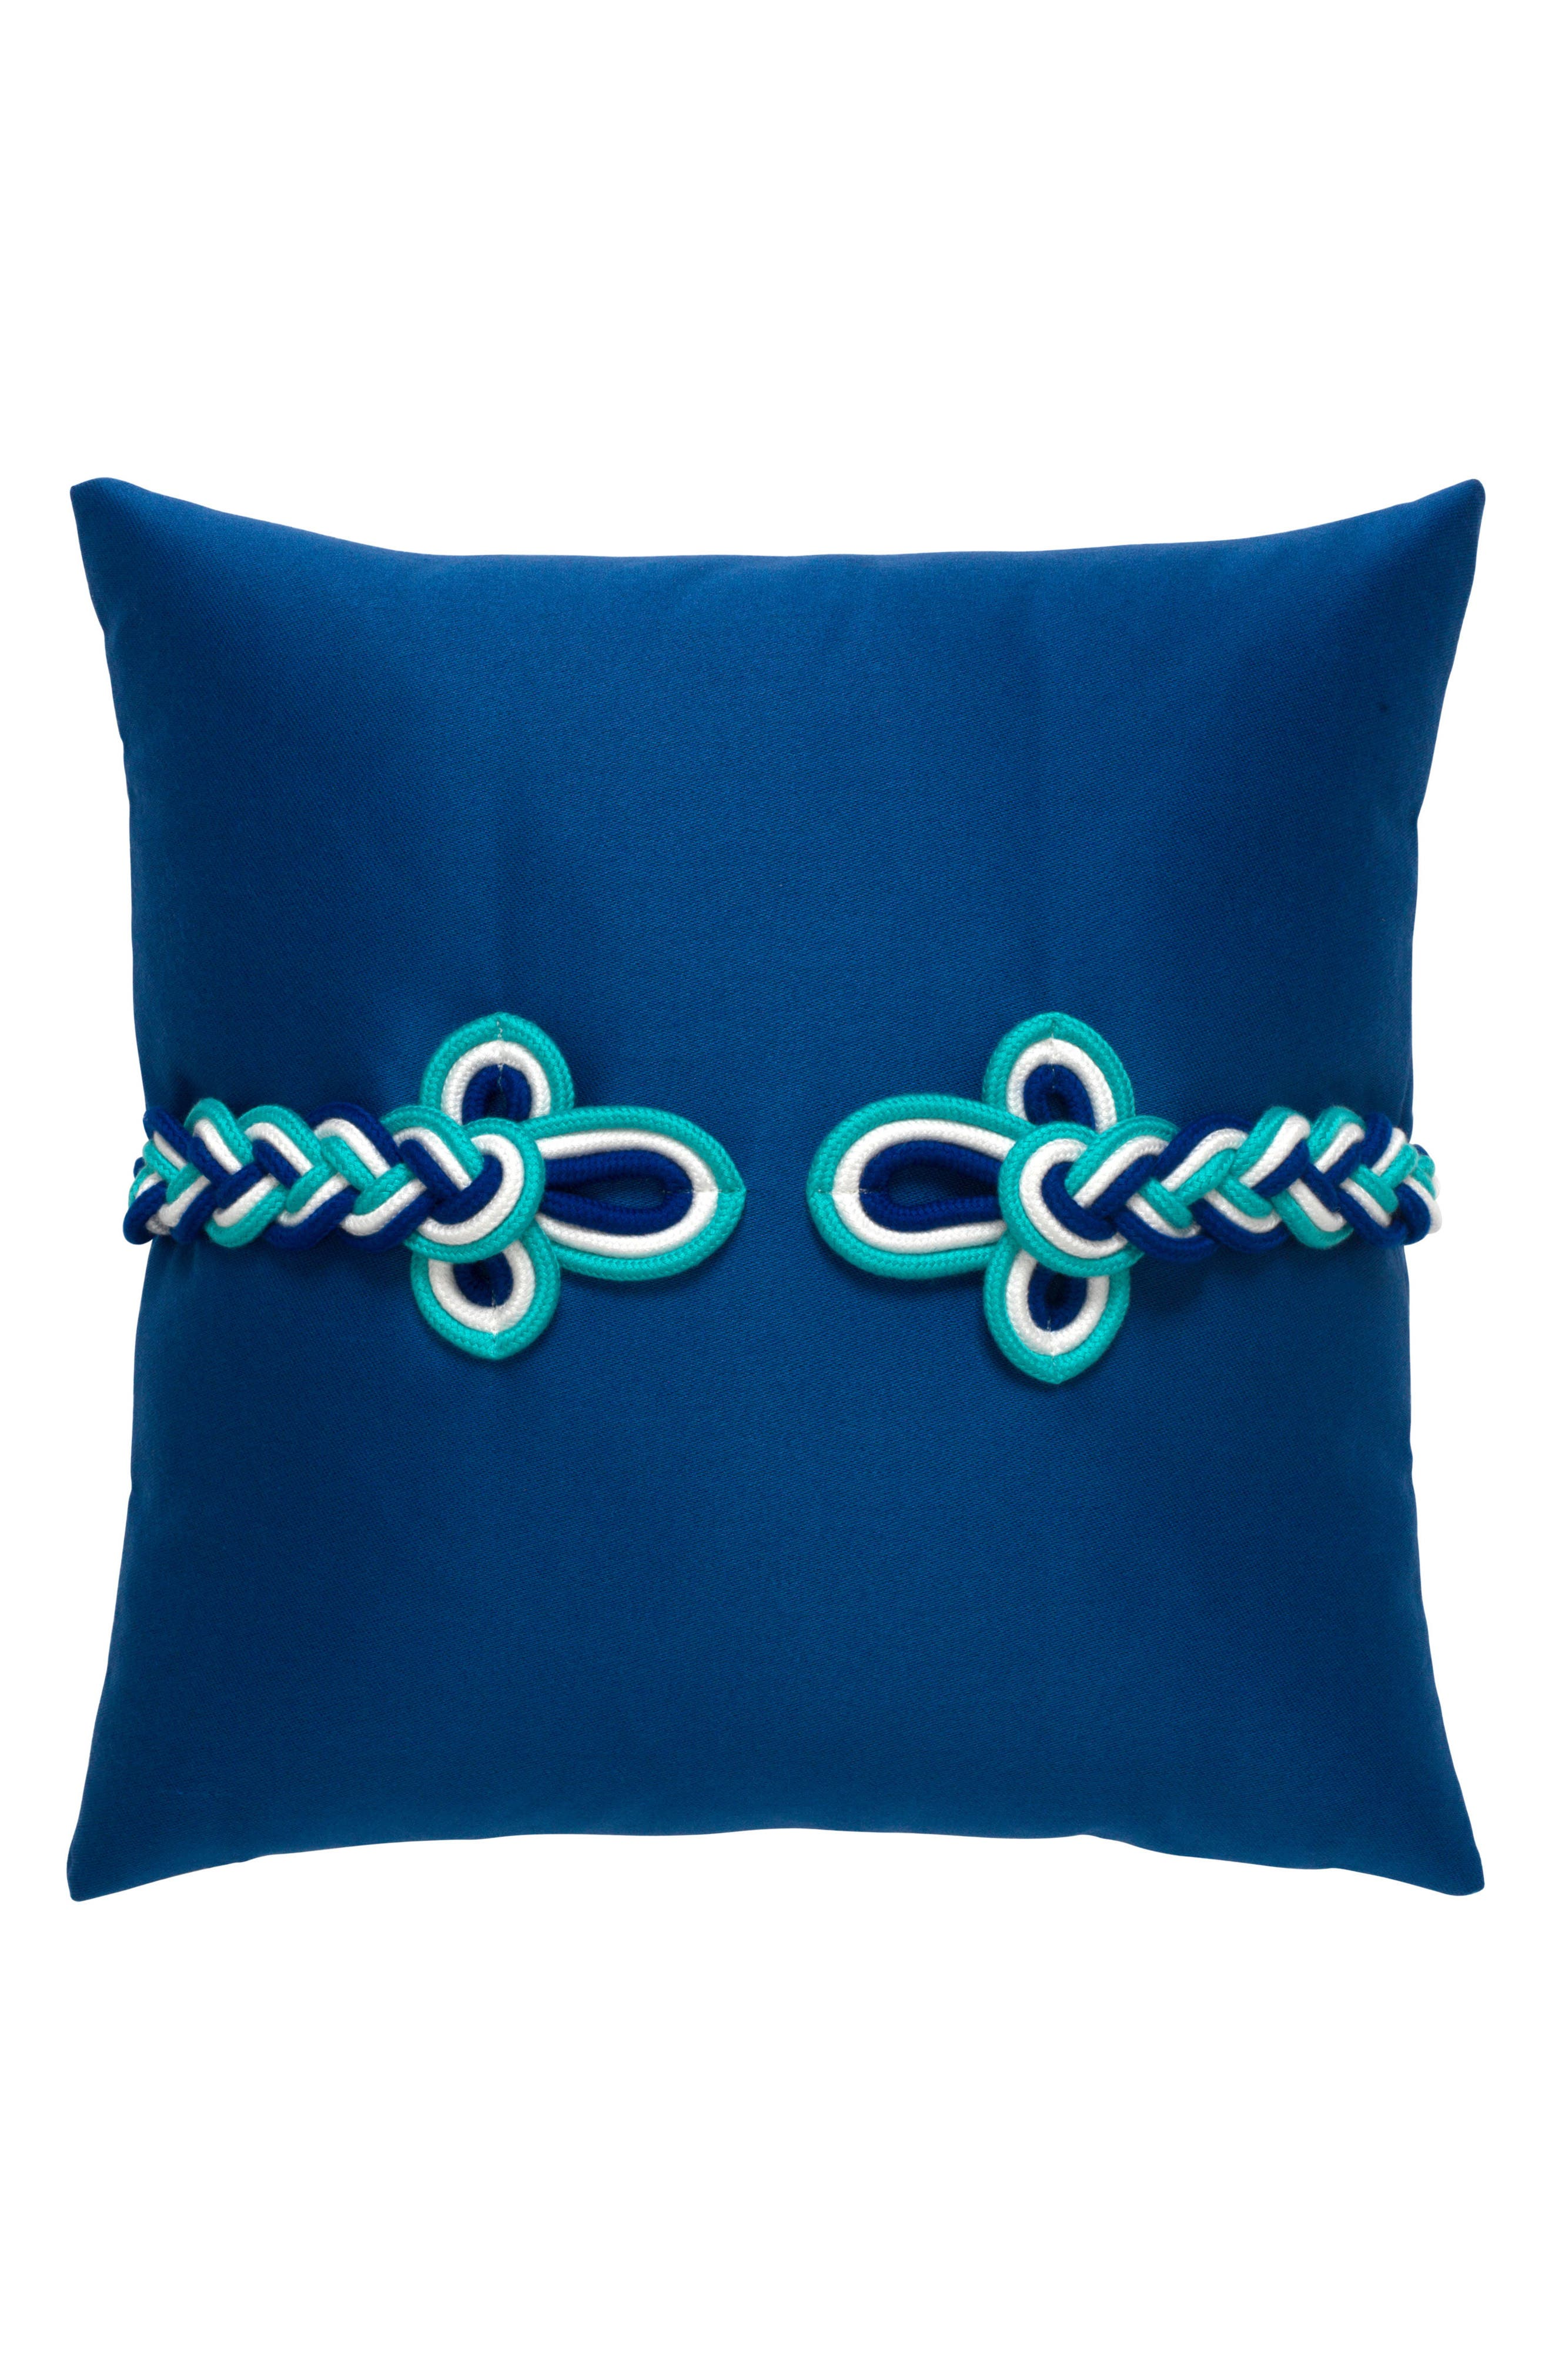 Cobalt Frogs Clasp Indoor/Outdoor Accent Pillow,                             Main thumbnail 1, color,                             400